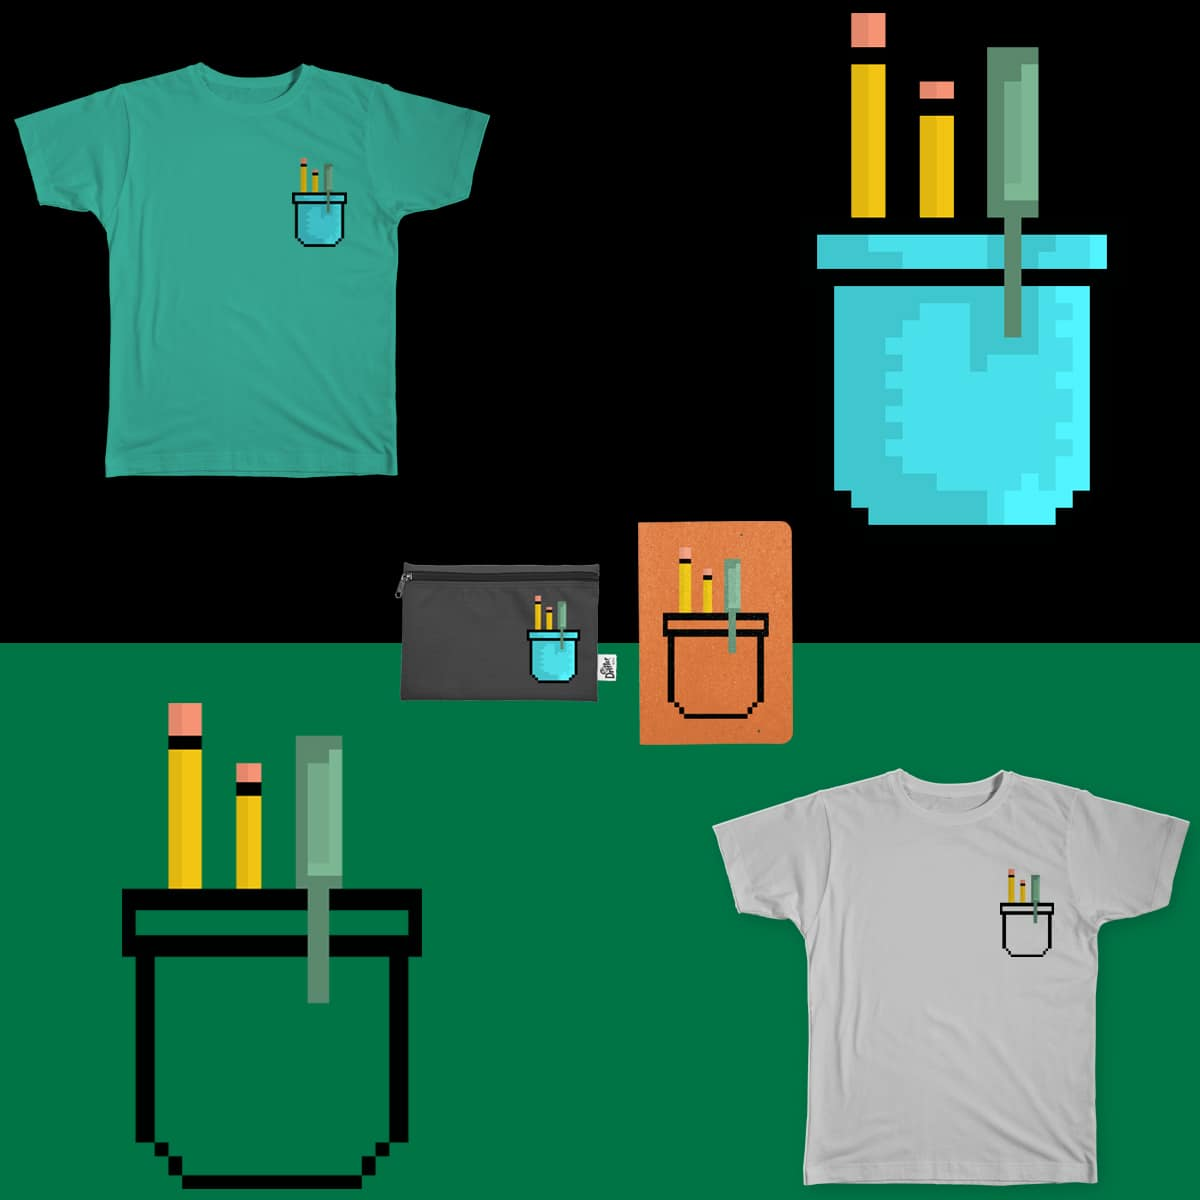 8 Bit Pocket by heycoffey on Threadless